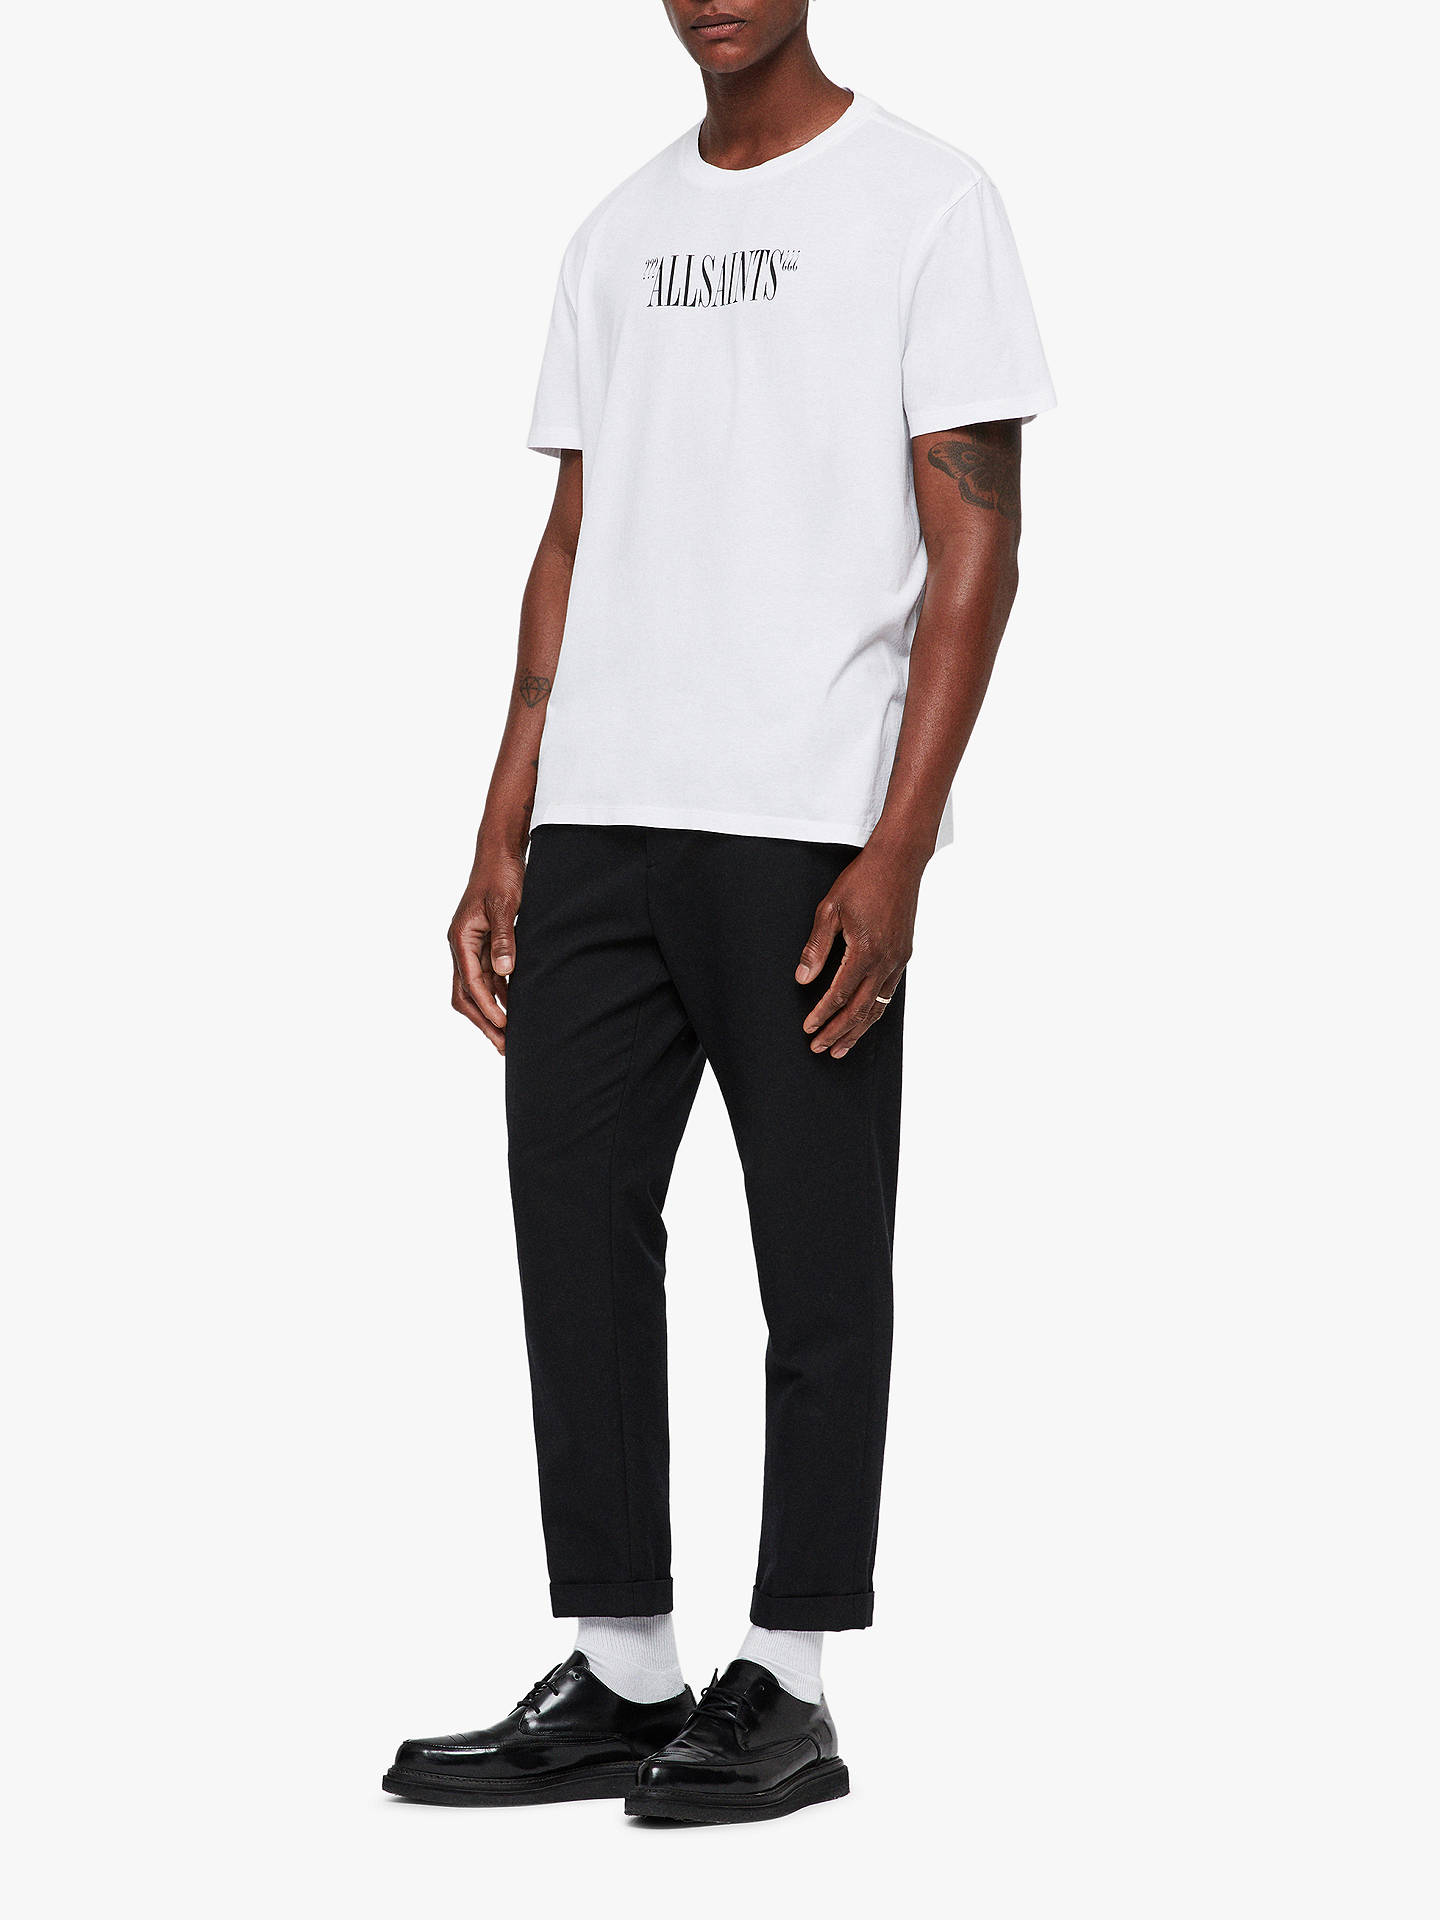 BuyAllSaints Brackets Short Sleeve Logo T-Shirt, Optic White/Black, L Online at johnlewis.com